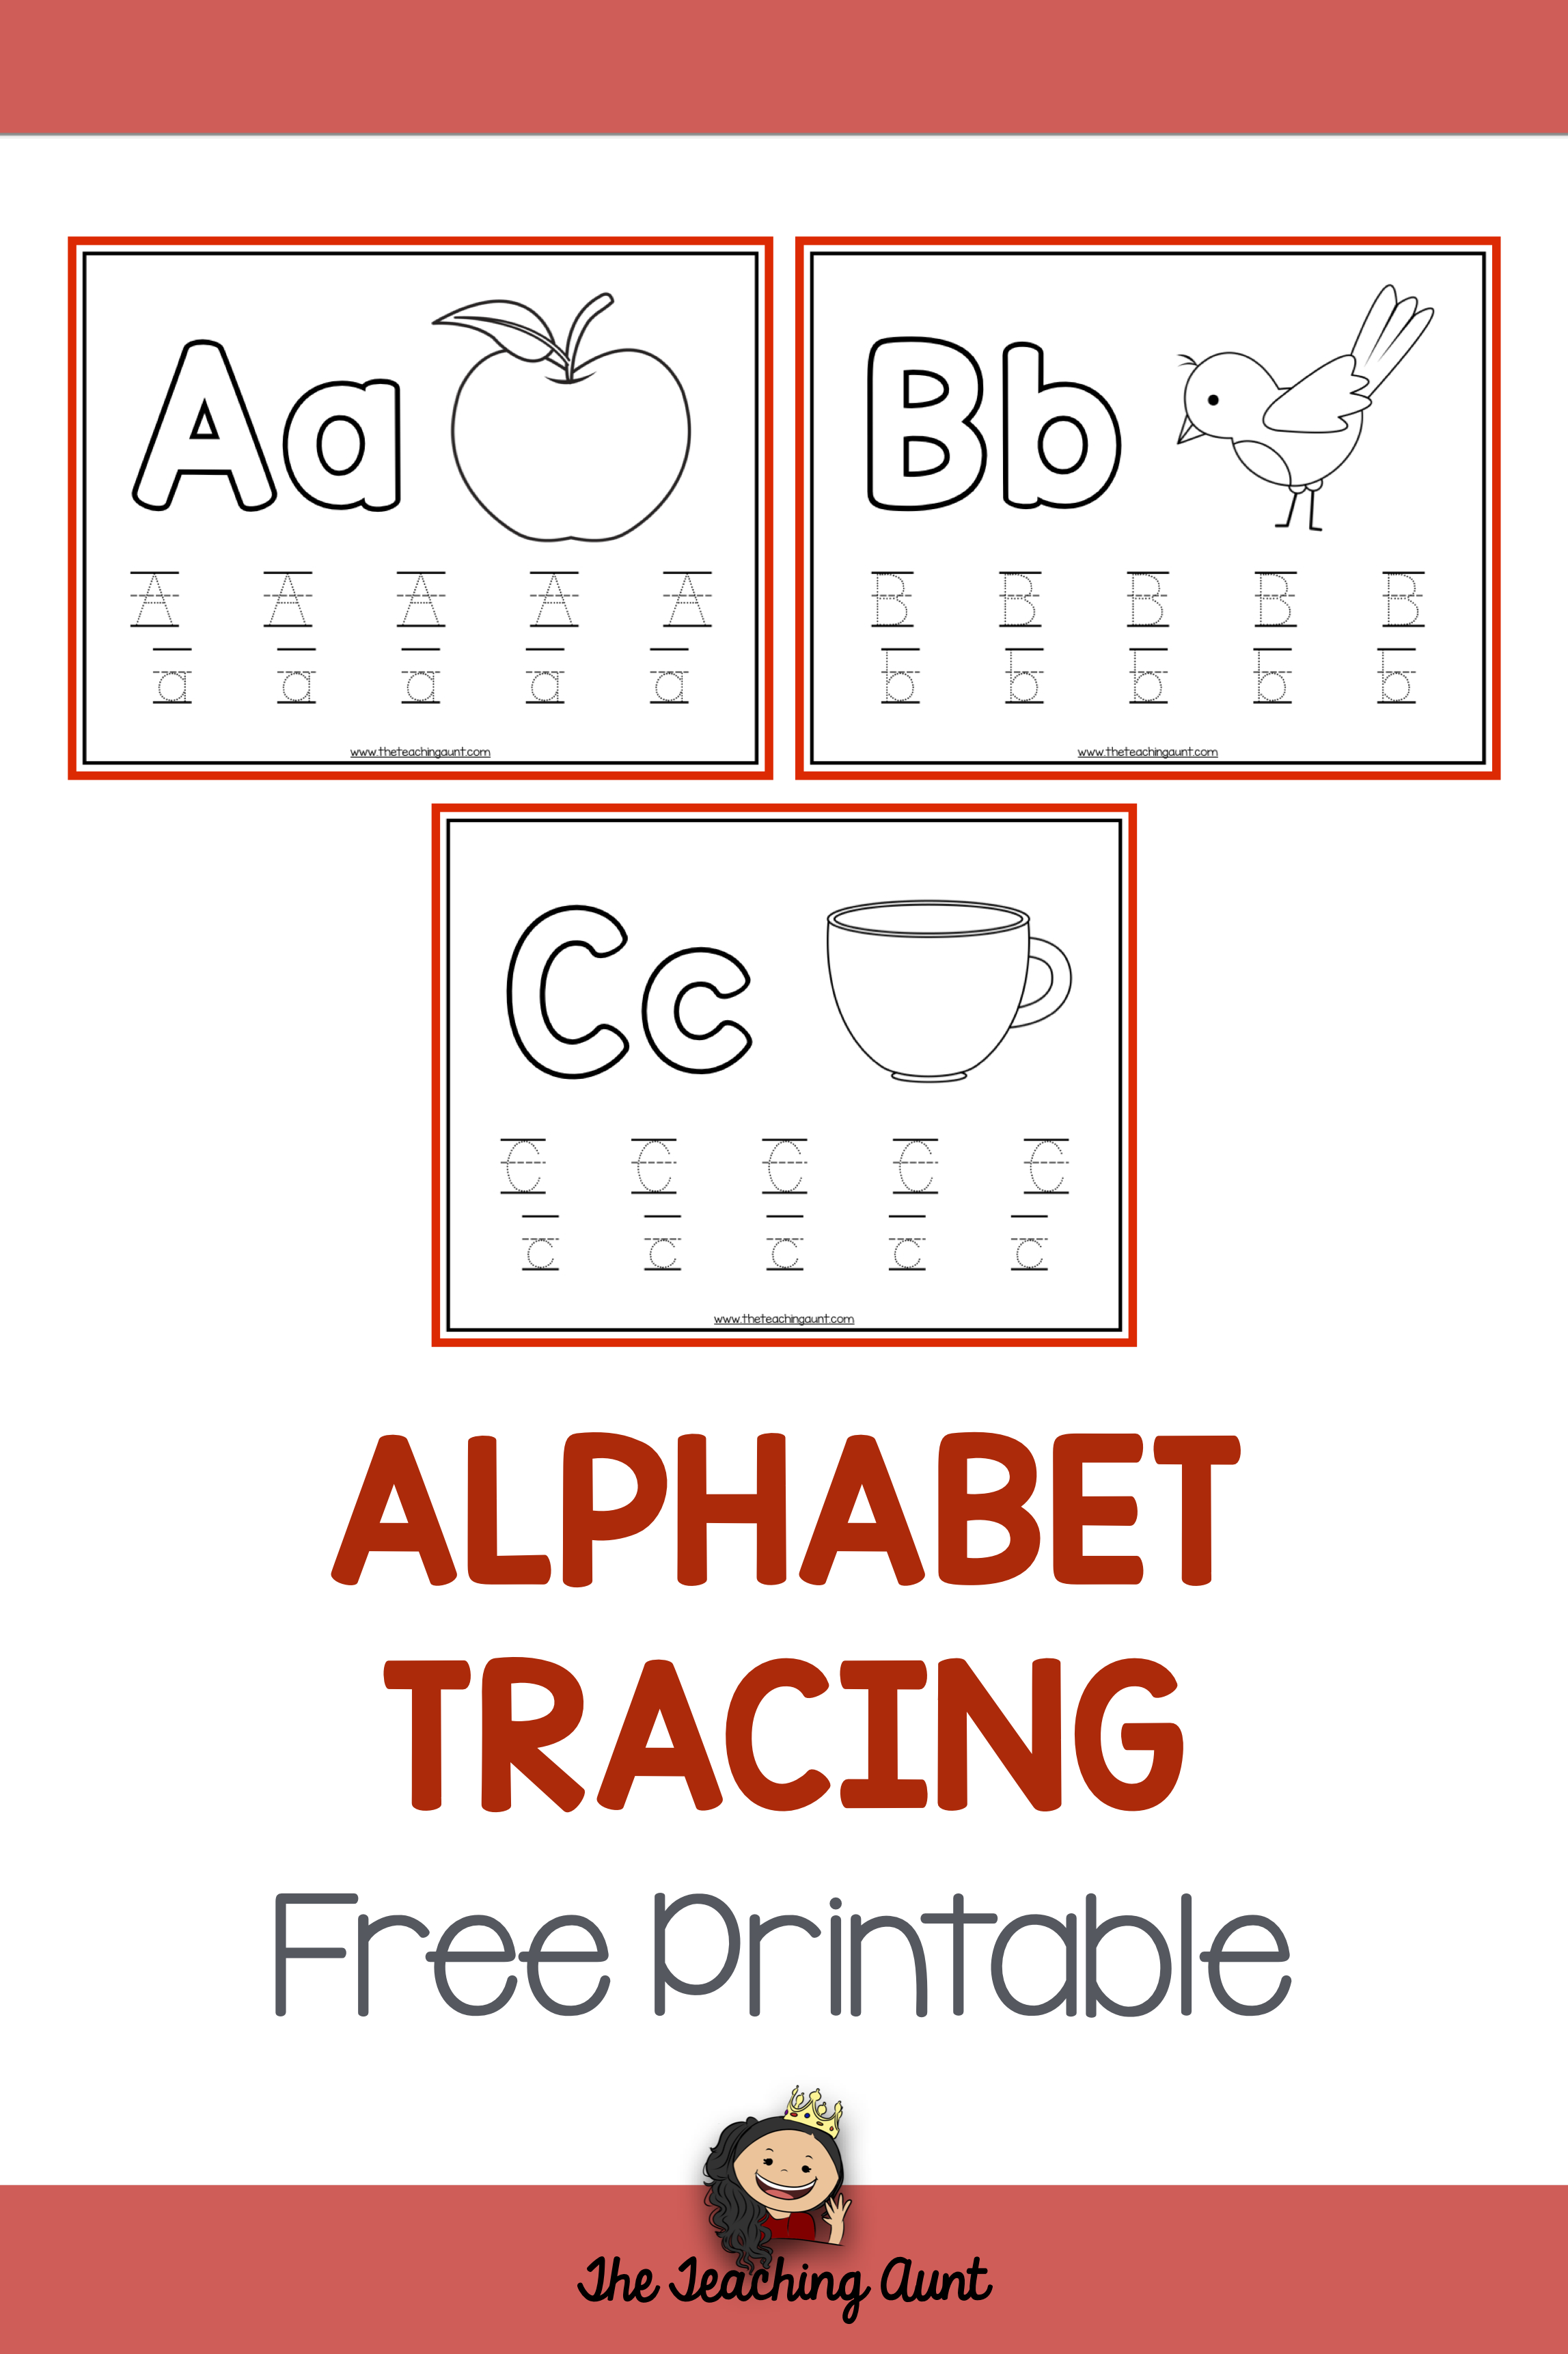 Alphabet Tracing Free Printable | Preschool Writing